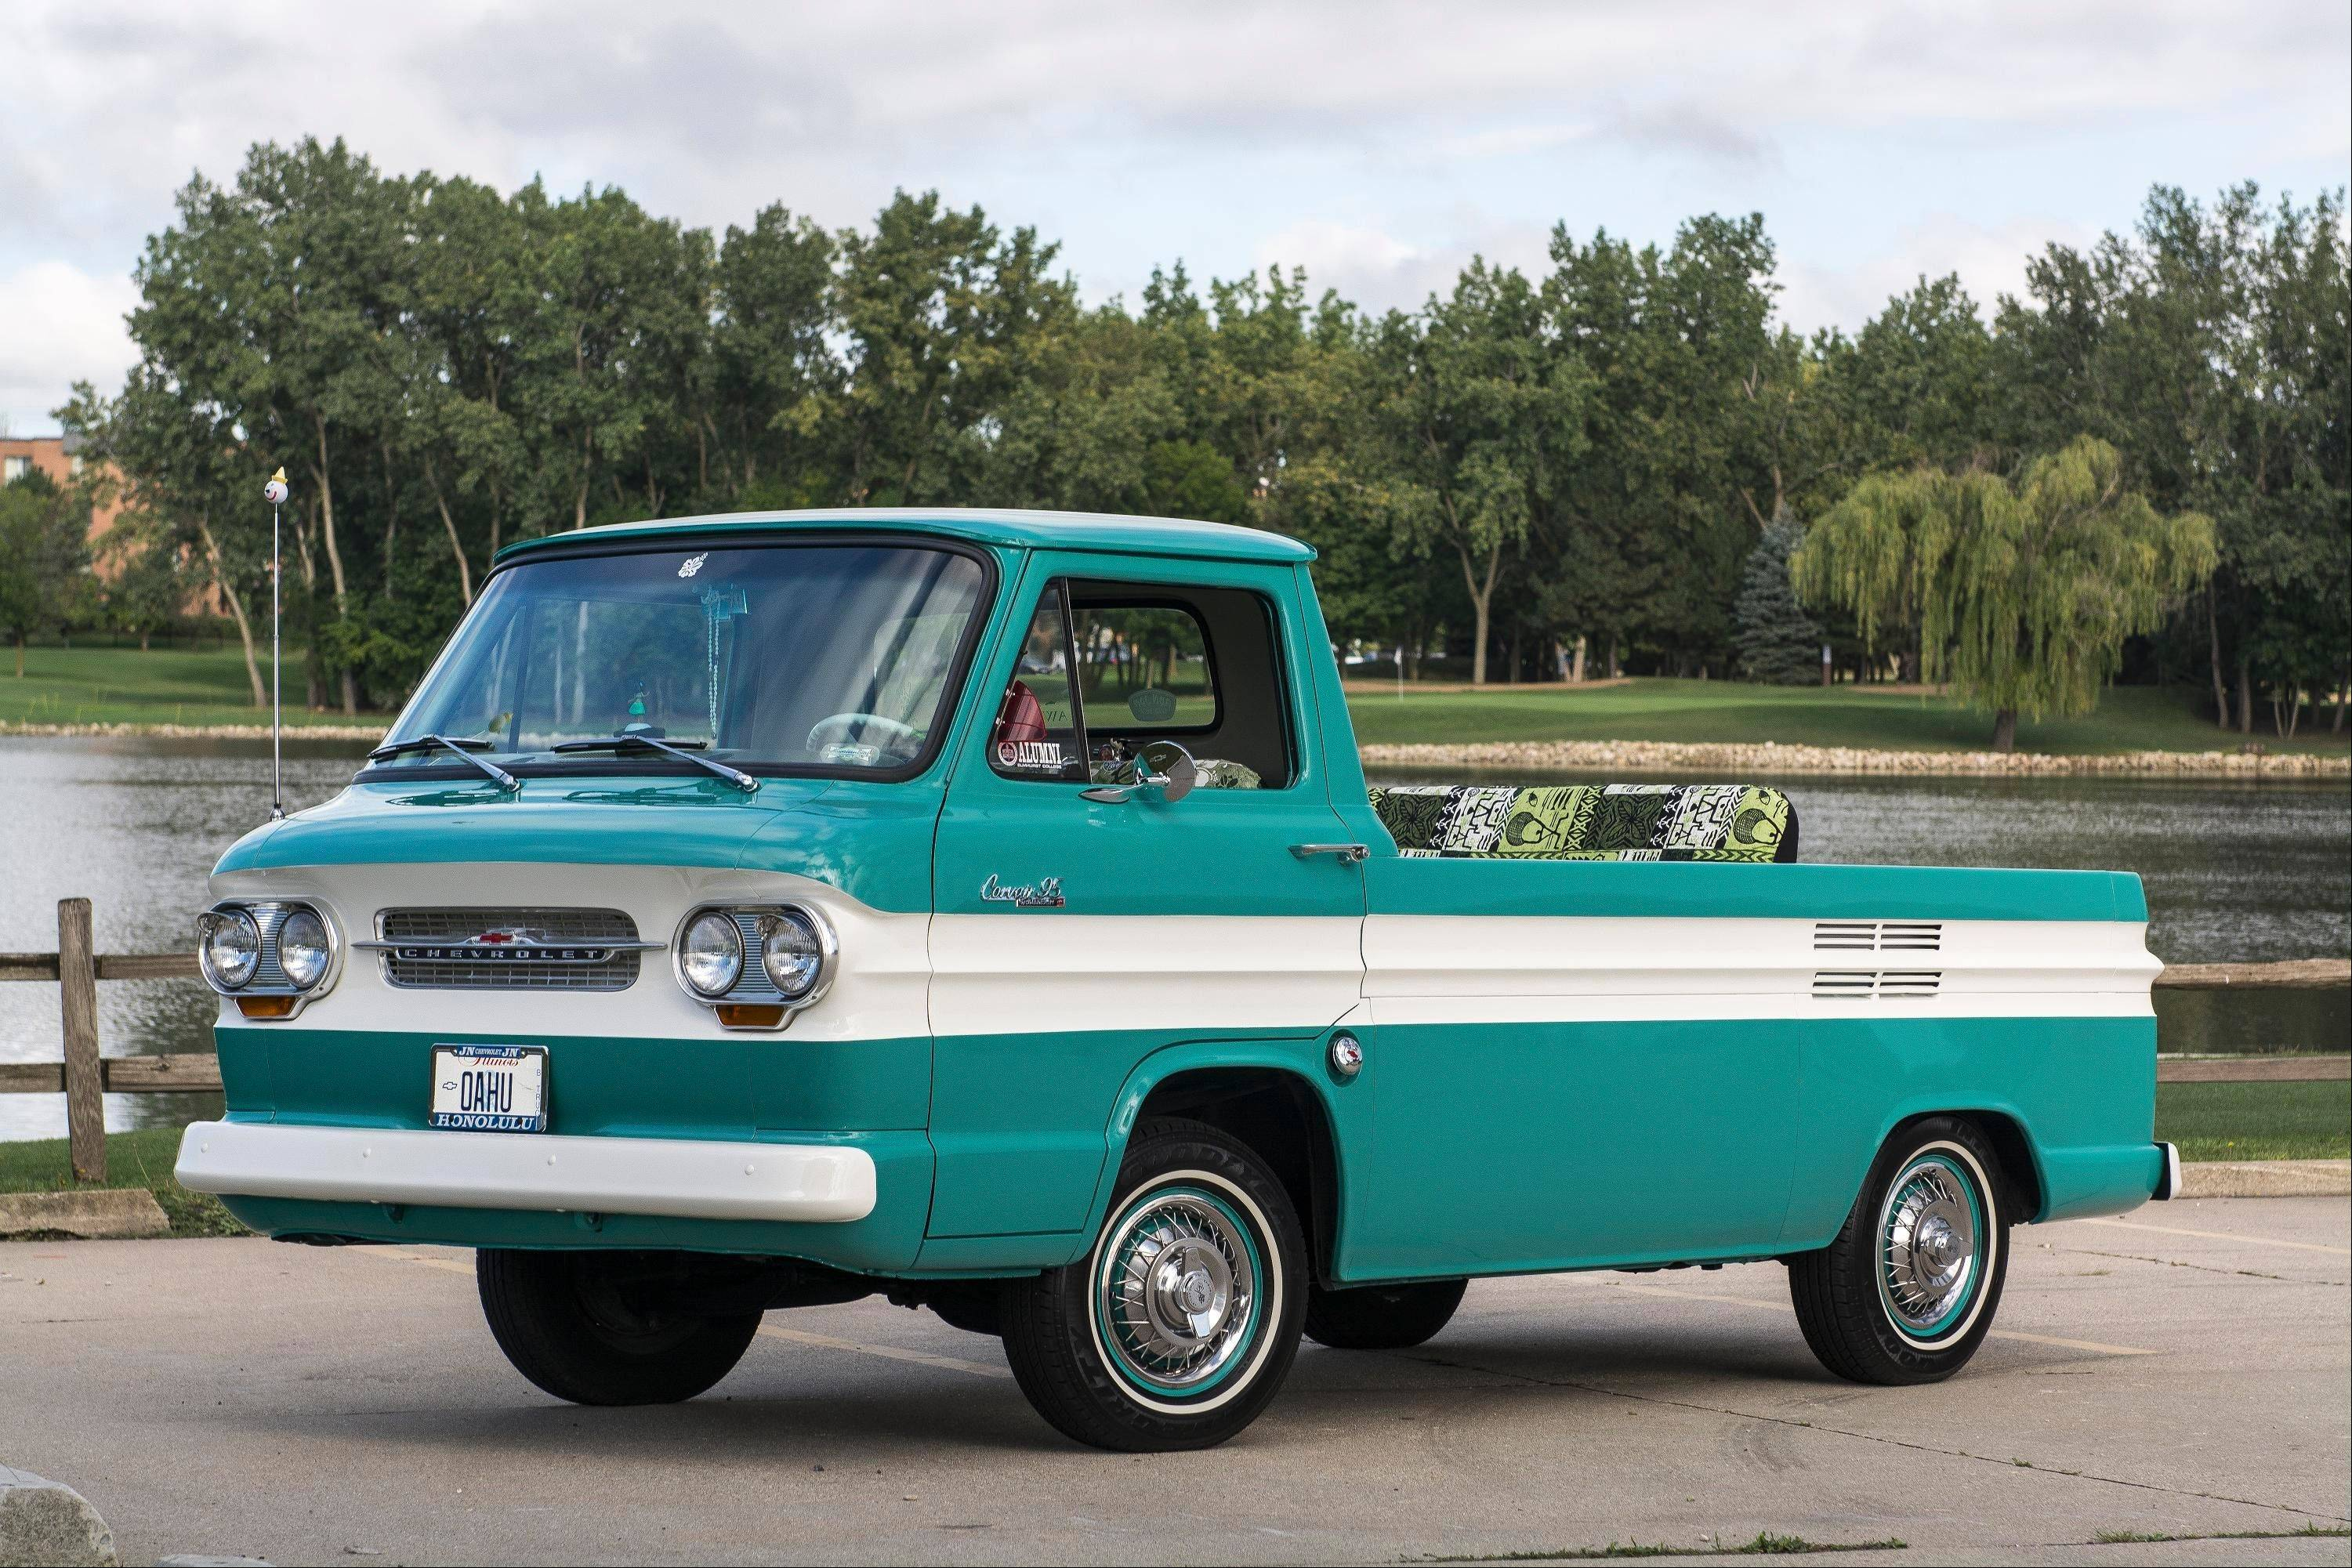 John Skowron, of Arlington Heights, owns this 1963 Corvair Rampside.